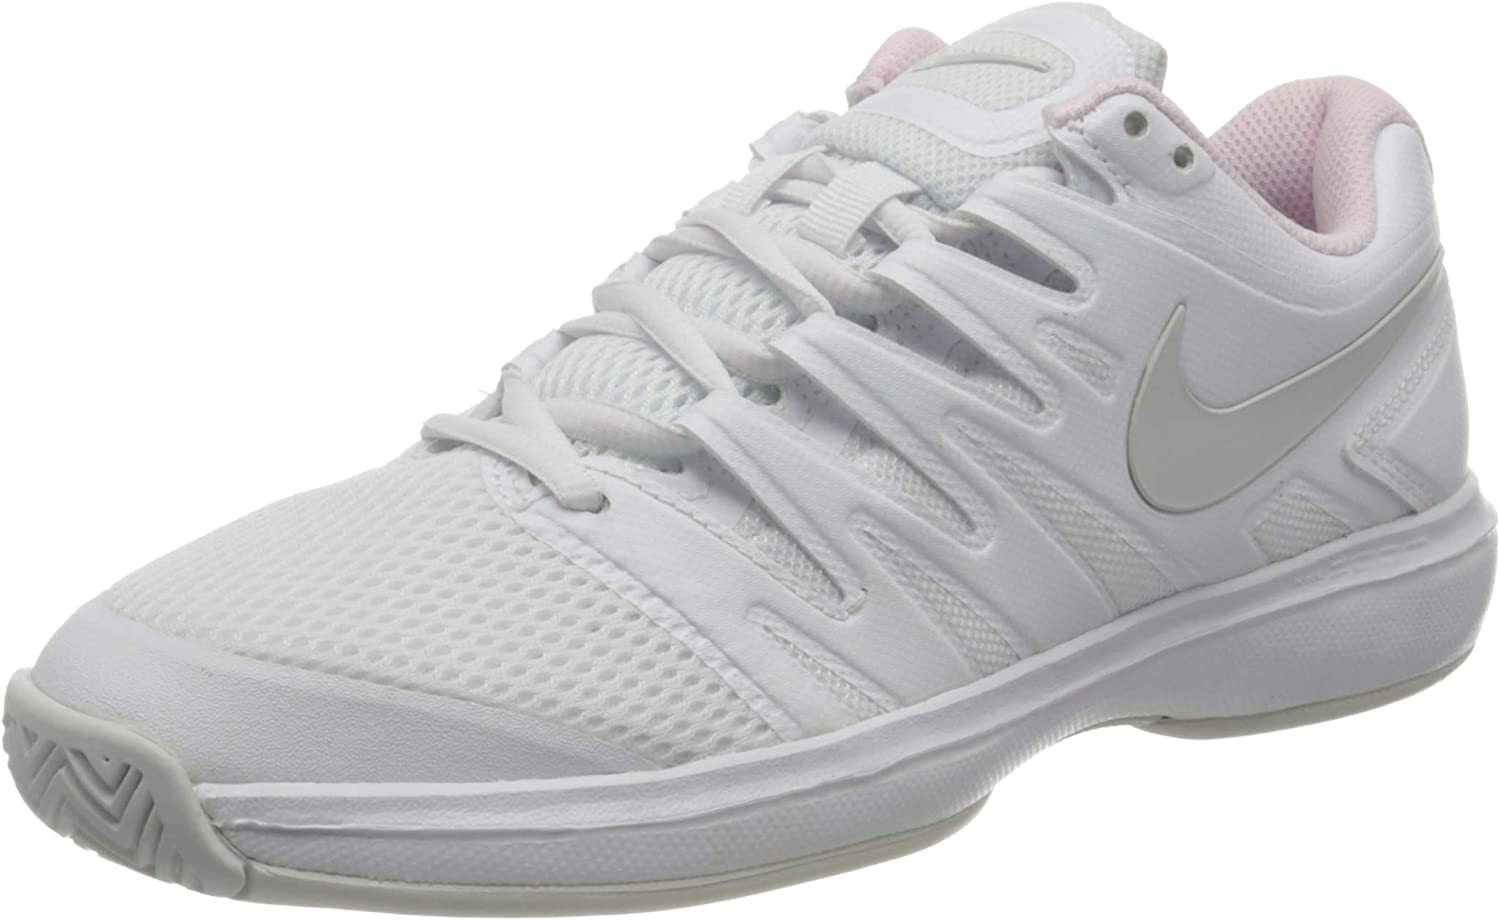 Nike We OFFer at cheap prices Women's Phoenix Mall Shoes Tennis